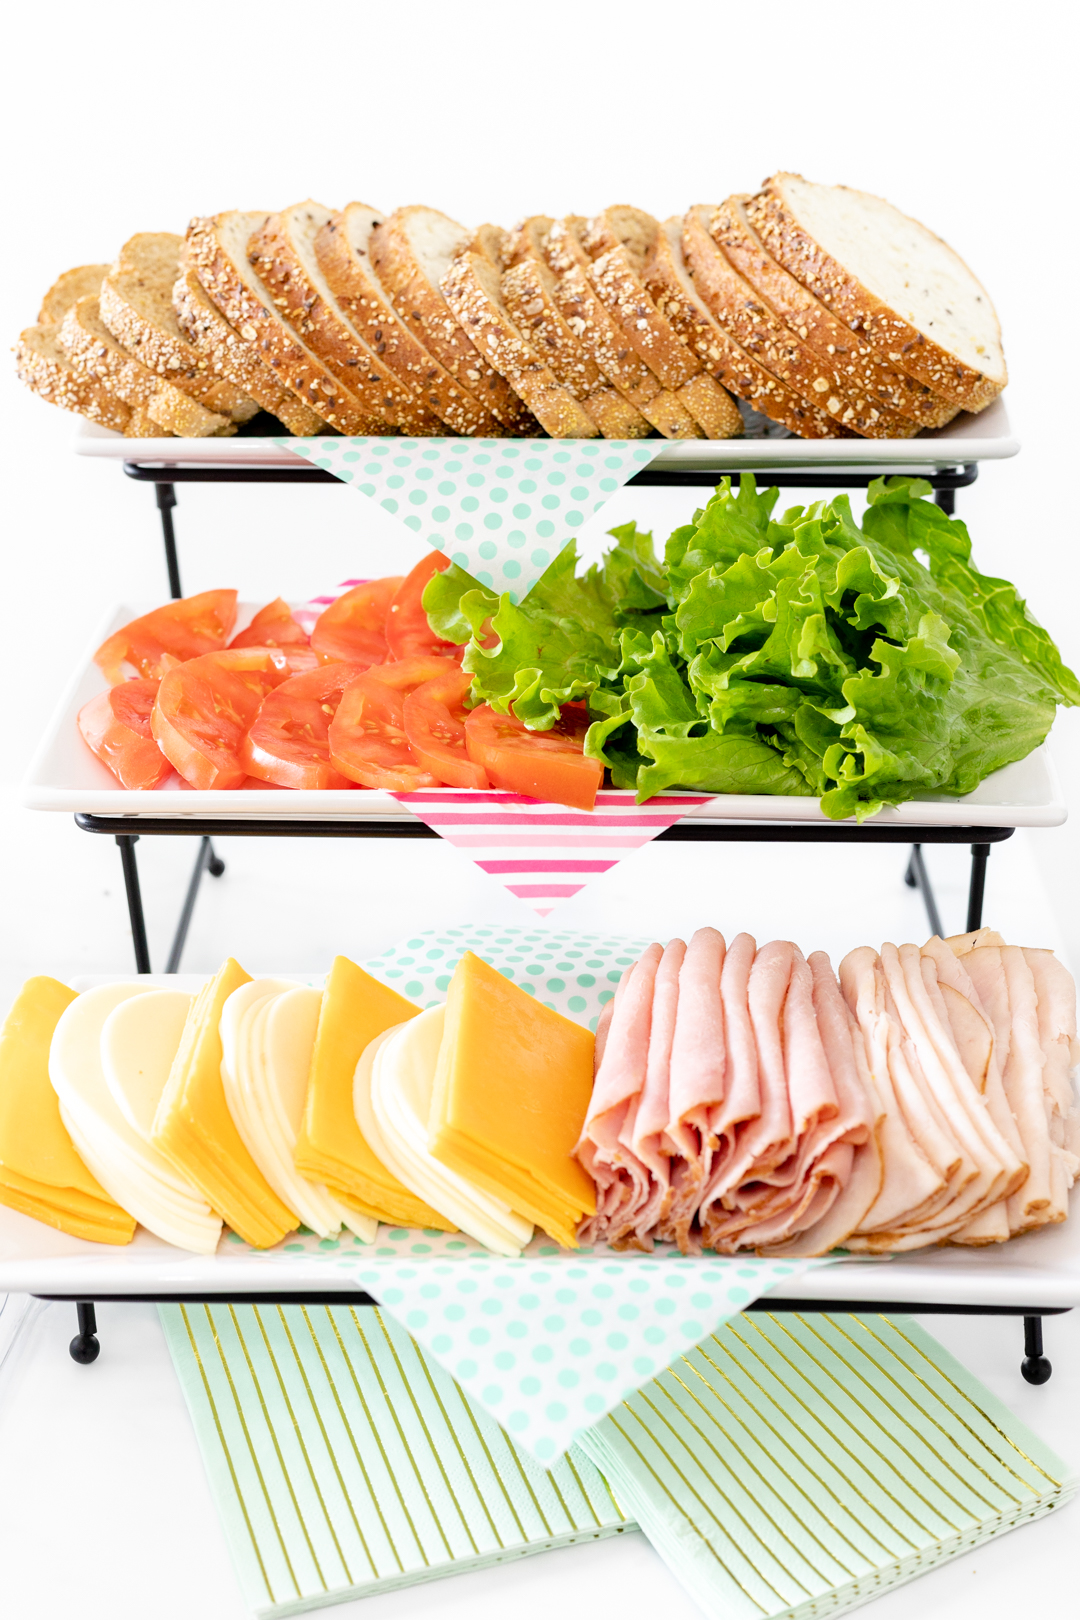 sandwich buffet station with bread, vegetables, cheese and meats.